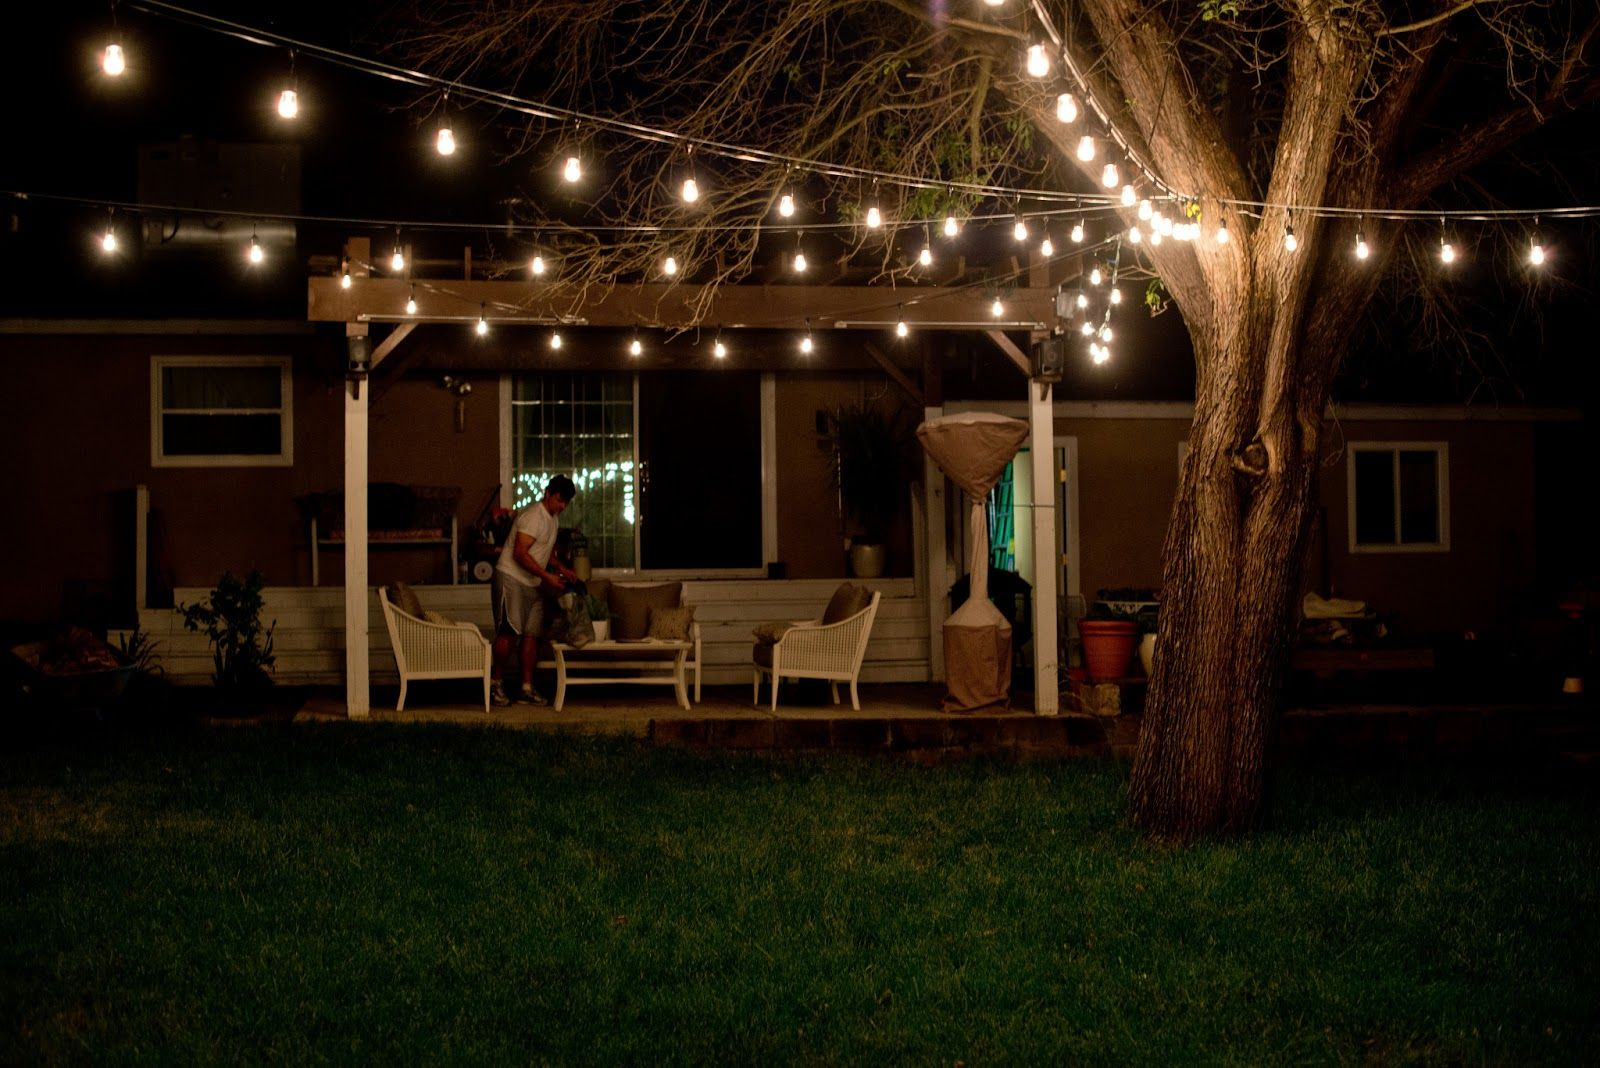 Find This Pin And More On The Great Outdoor... Spaces By Sarahjarnagin.  Outdoor Round Patio String Lights ...